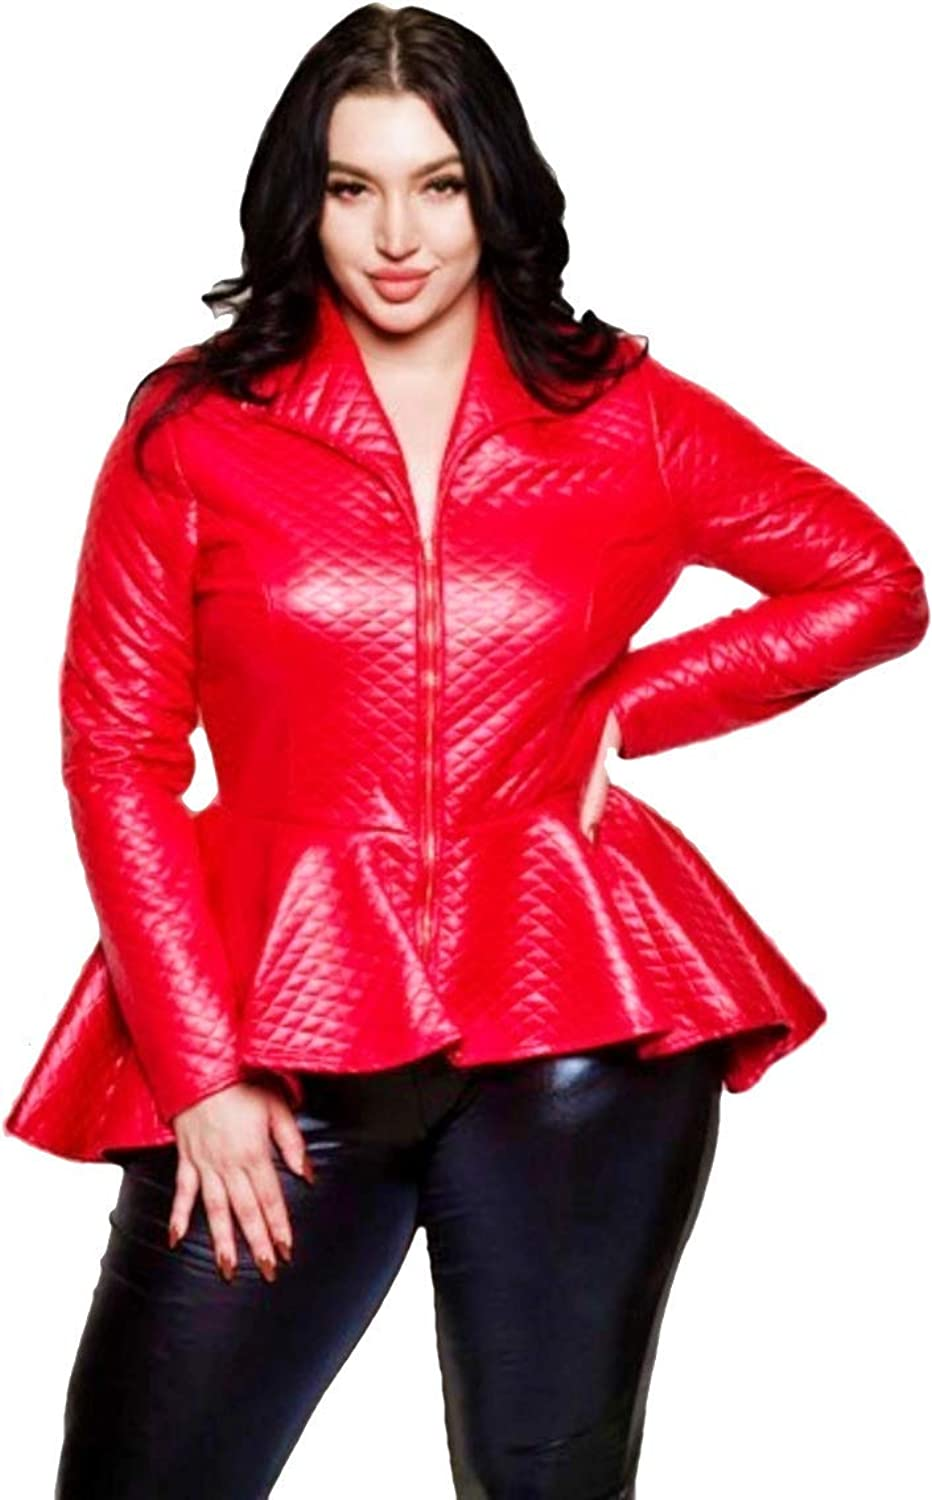 L'Diva Couture Boutique Women's Red Peplum Leather Jacket Plus Size